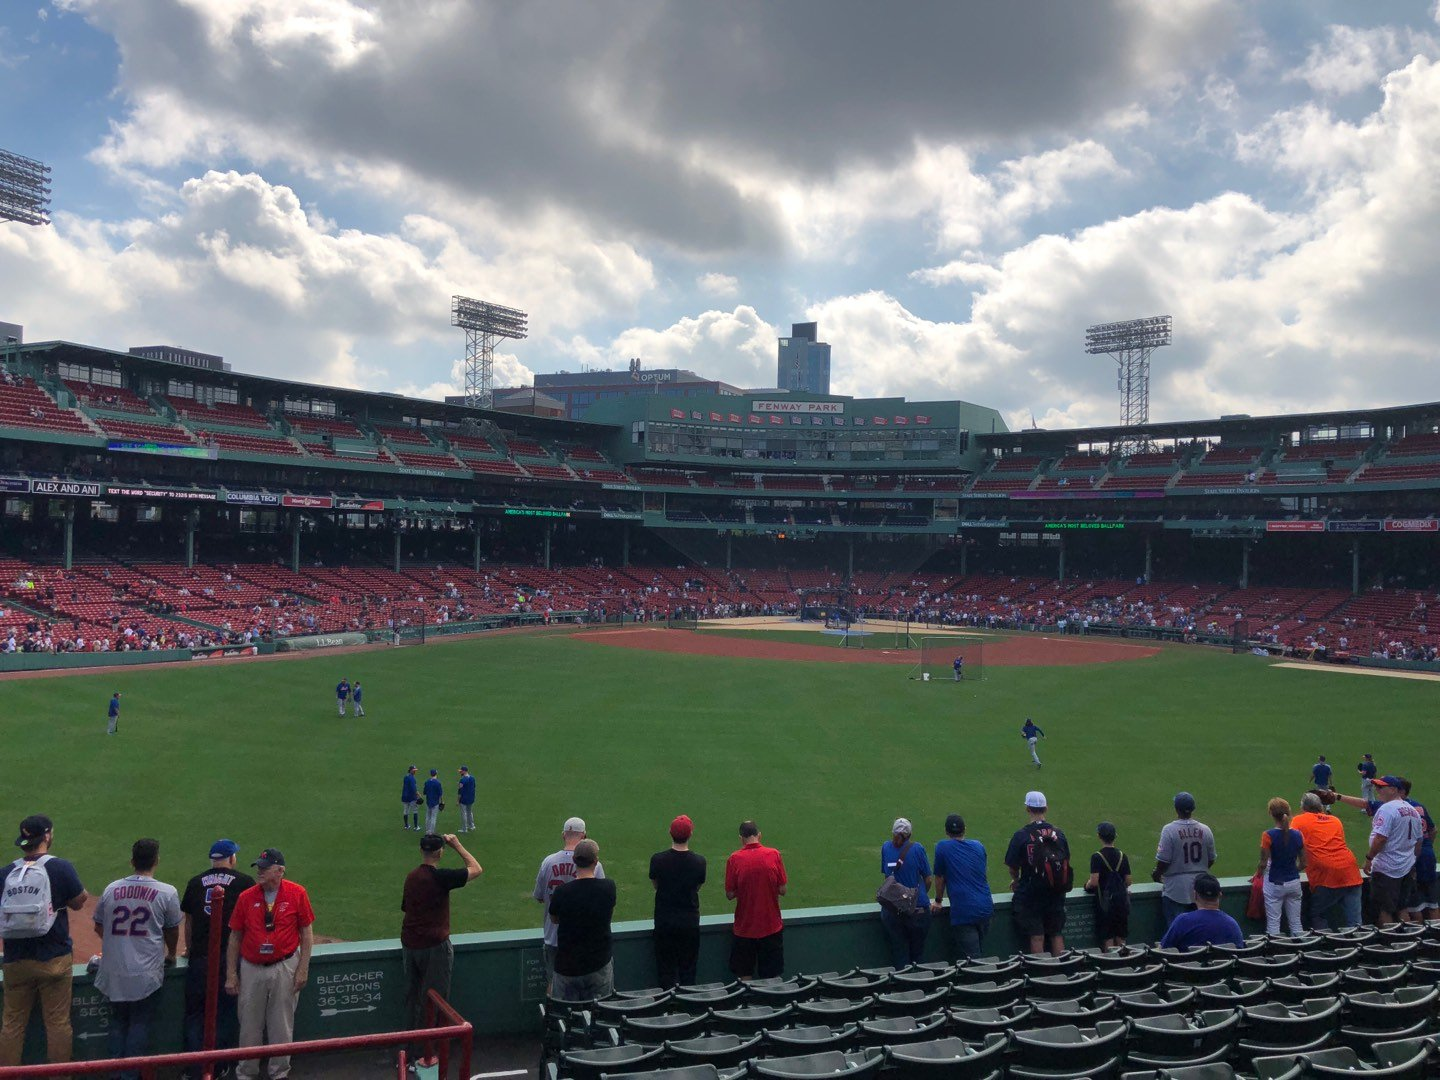 Fenway Park Section Bleacher 36 Row 12 Seat 25